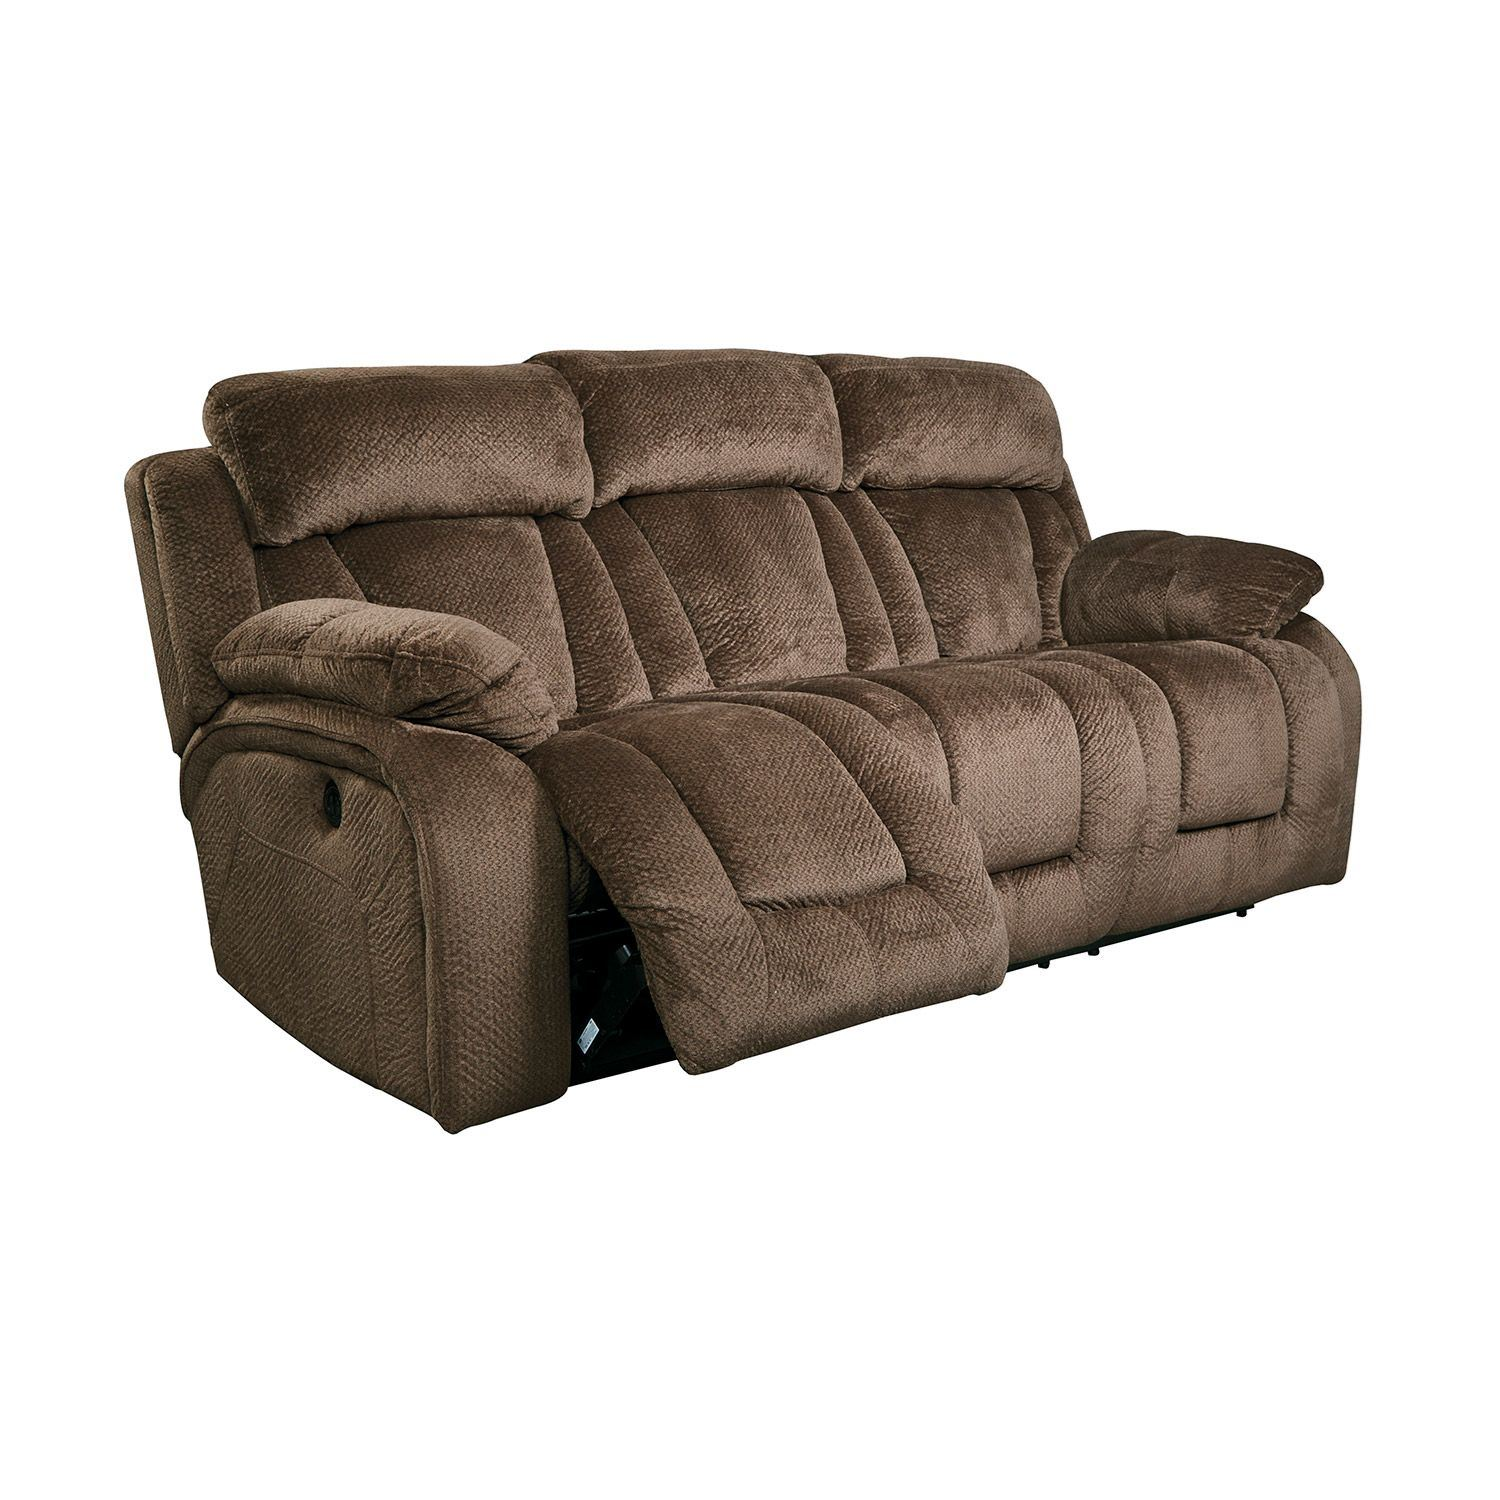 stricklin chocolate reclining sofa r 865rs ashley furniture 8650388 afw. Black Bedroom Furniture Sets. Home Design Ideas